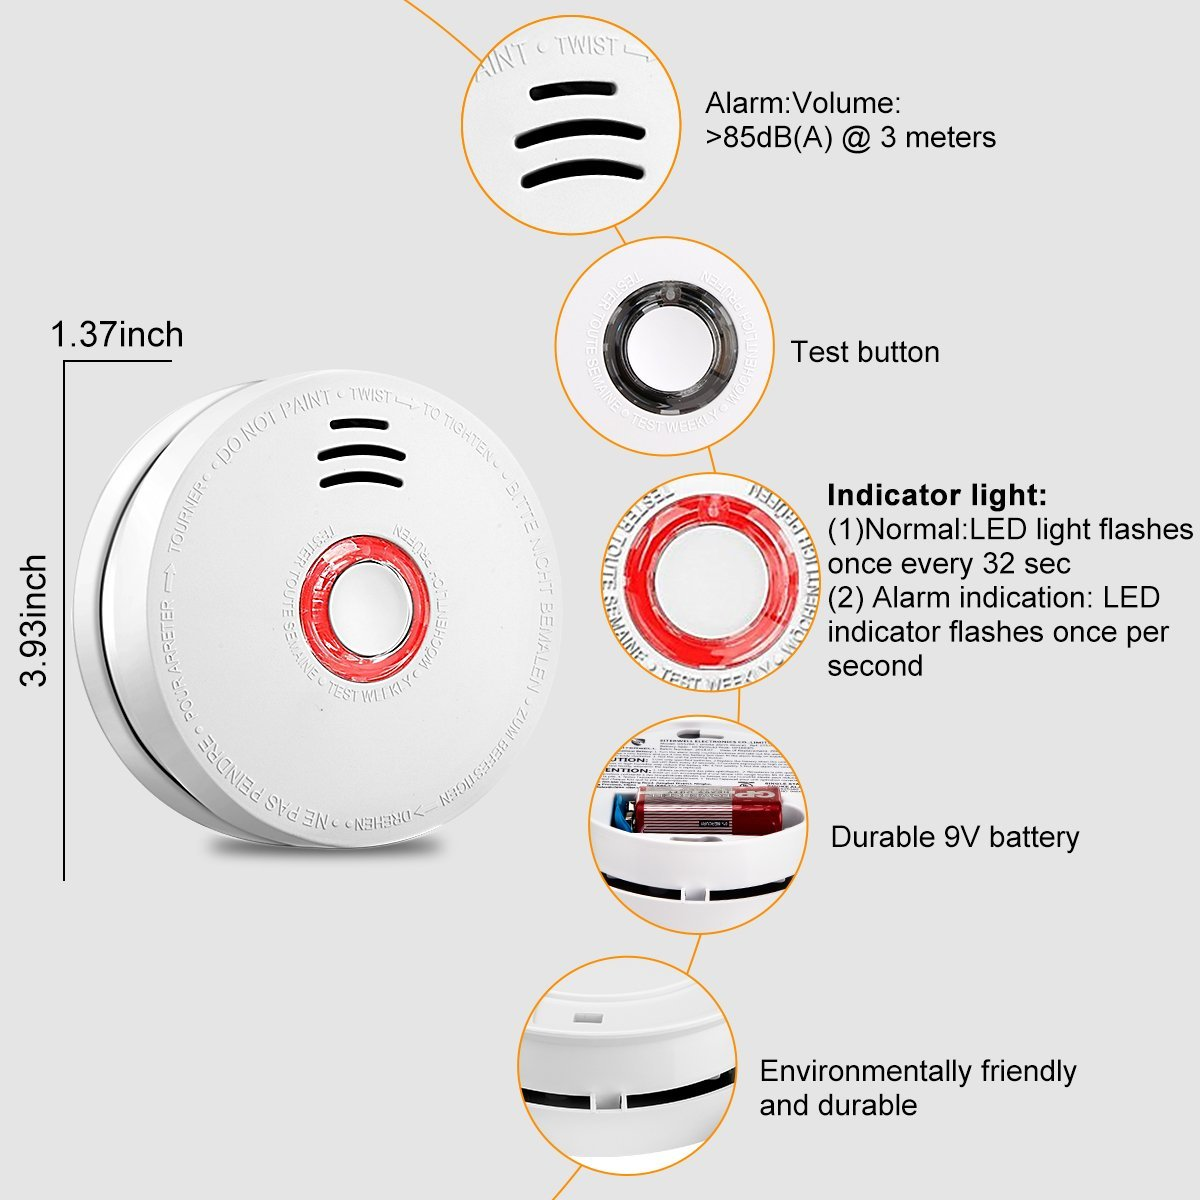 Smoke Alarm Fire Alarm Smoke Detector with Test Button 9 Volt Battery-Operated Photoelectric Smoke Alarms for Bedroom,Kitchen,Corridor,Bathroom and Hotel,10 Years 2 Pack Smoke Alarm with UL Listed by Askont (Image #2)